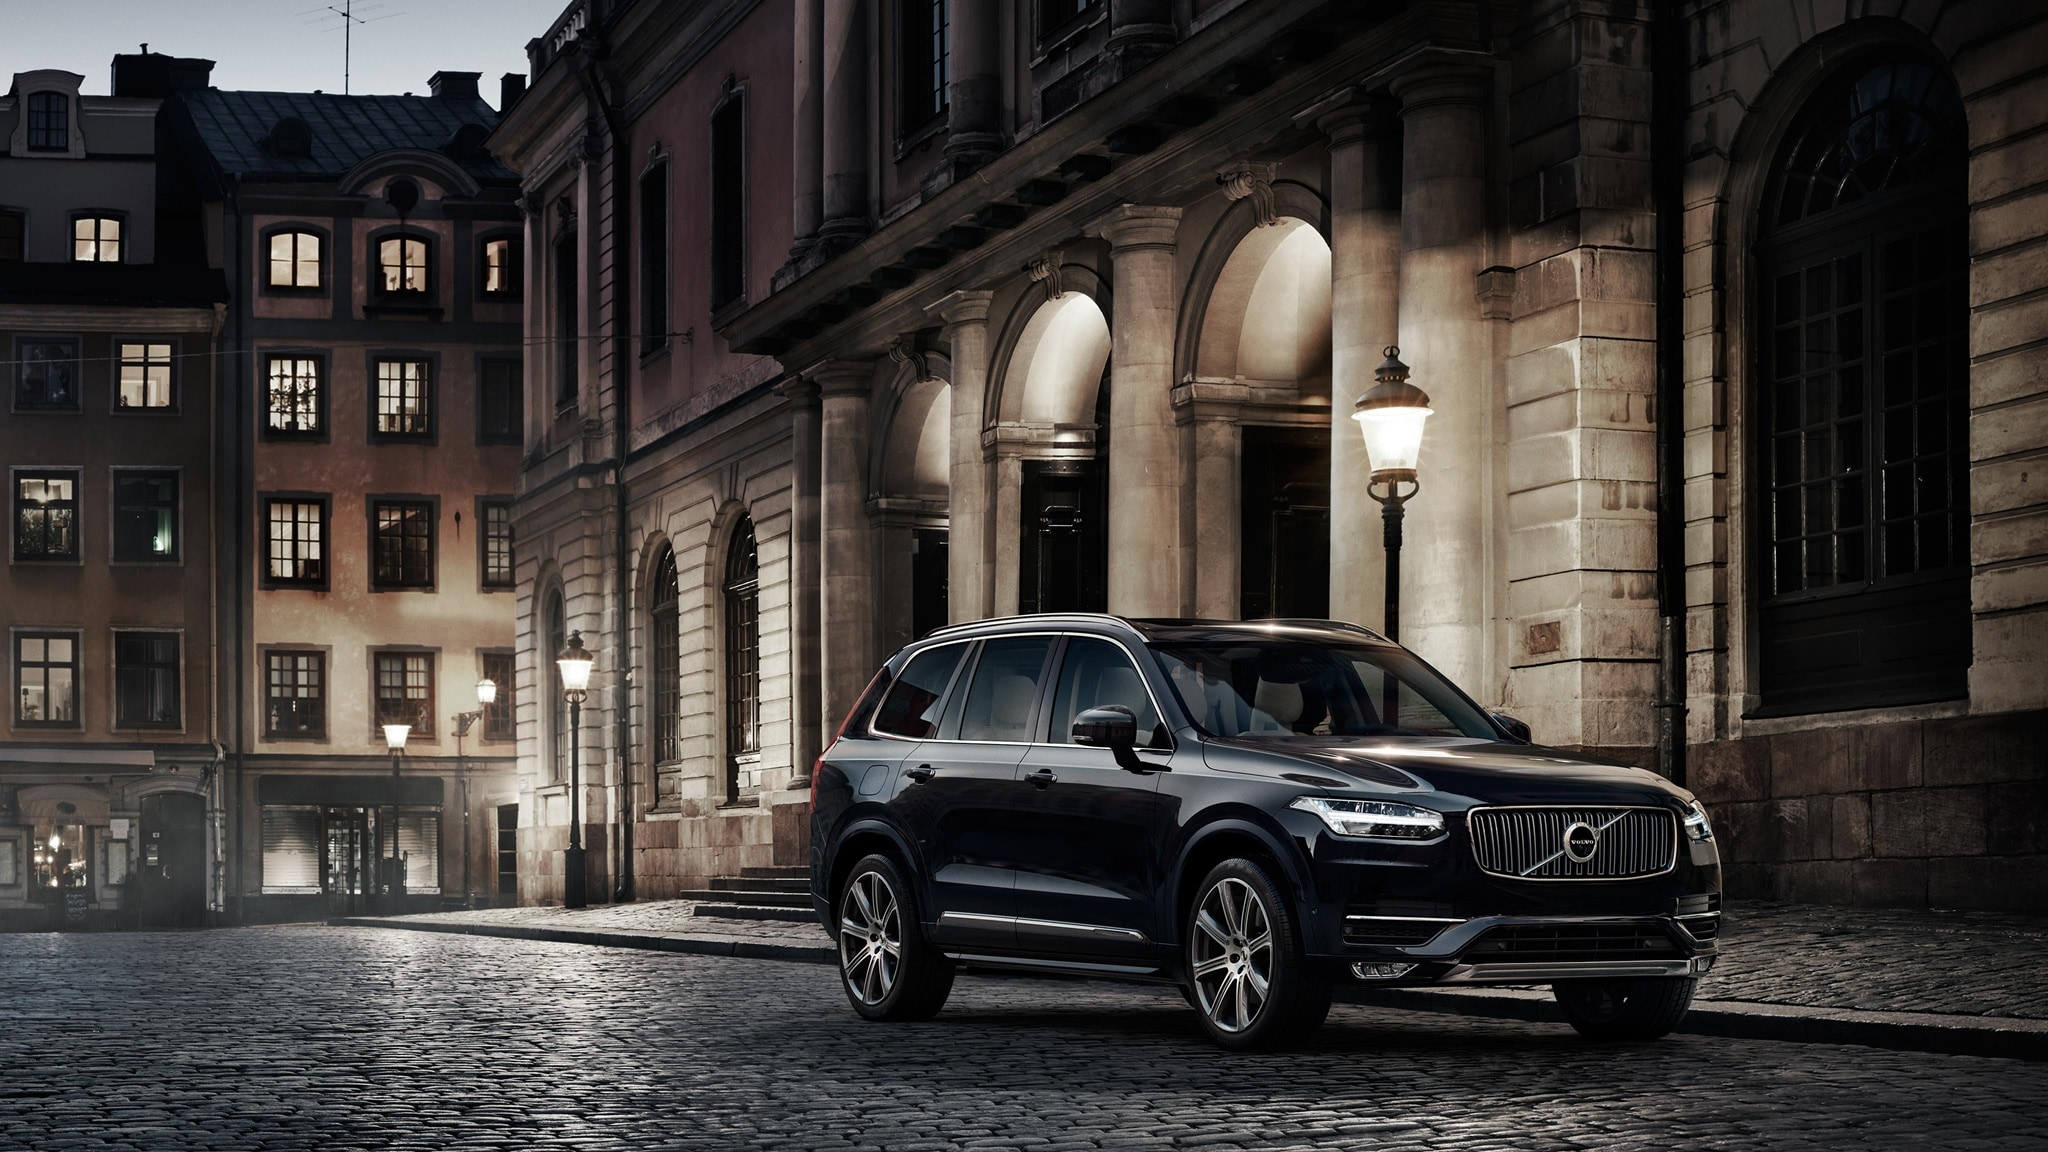 boston now and down cars are s deals leases first payment b volvo plus month com specials months dealers on ma miles all village lease the shop required